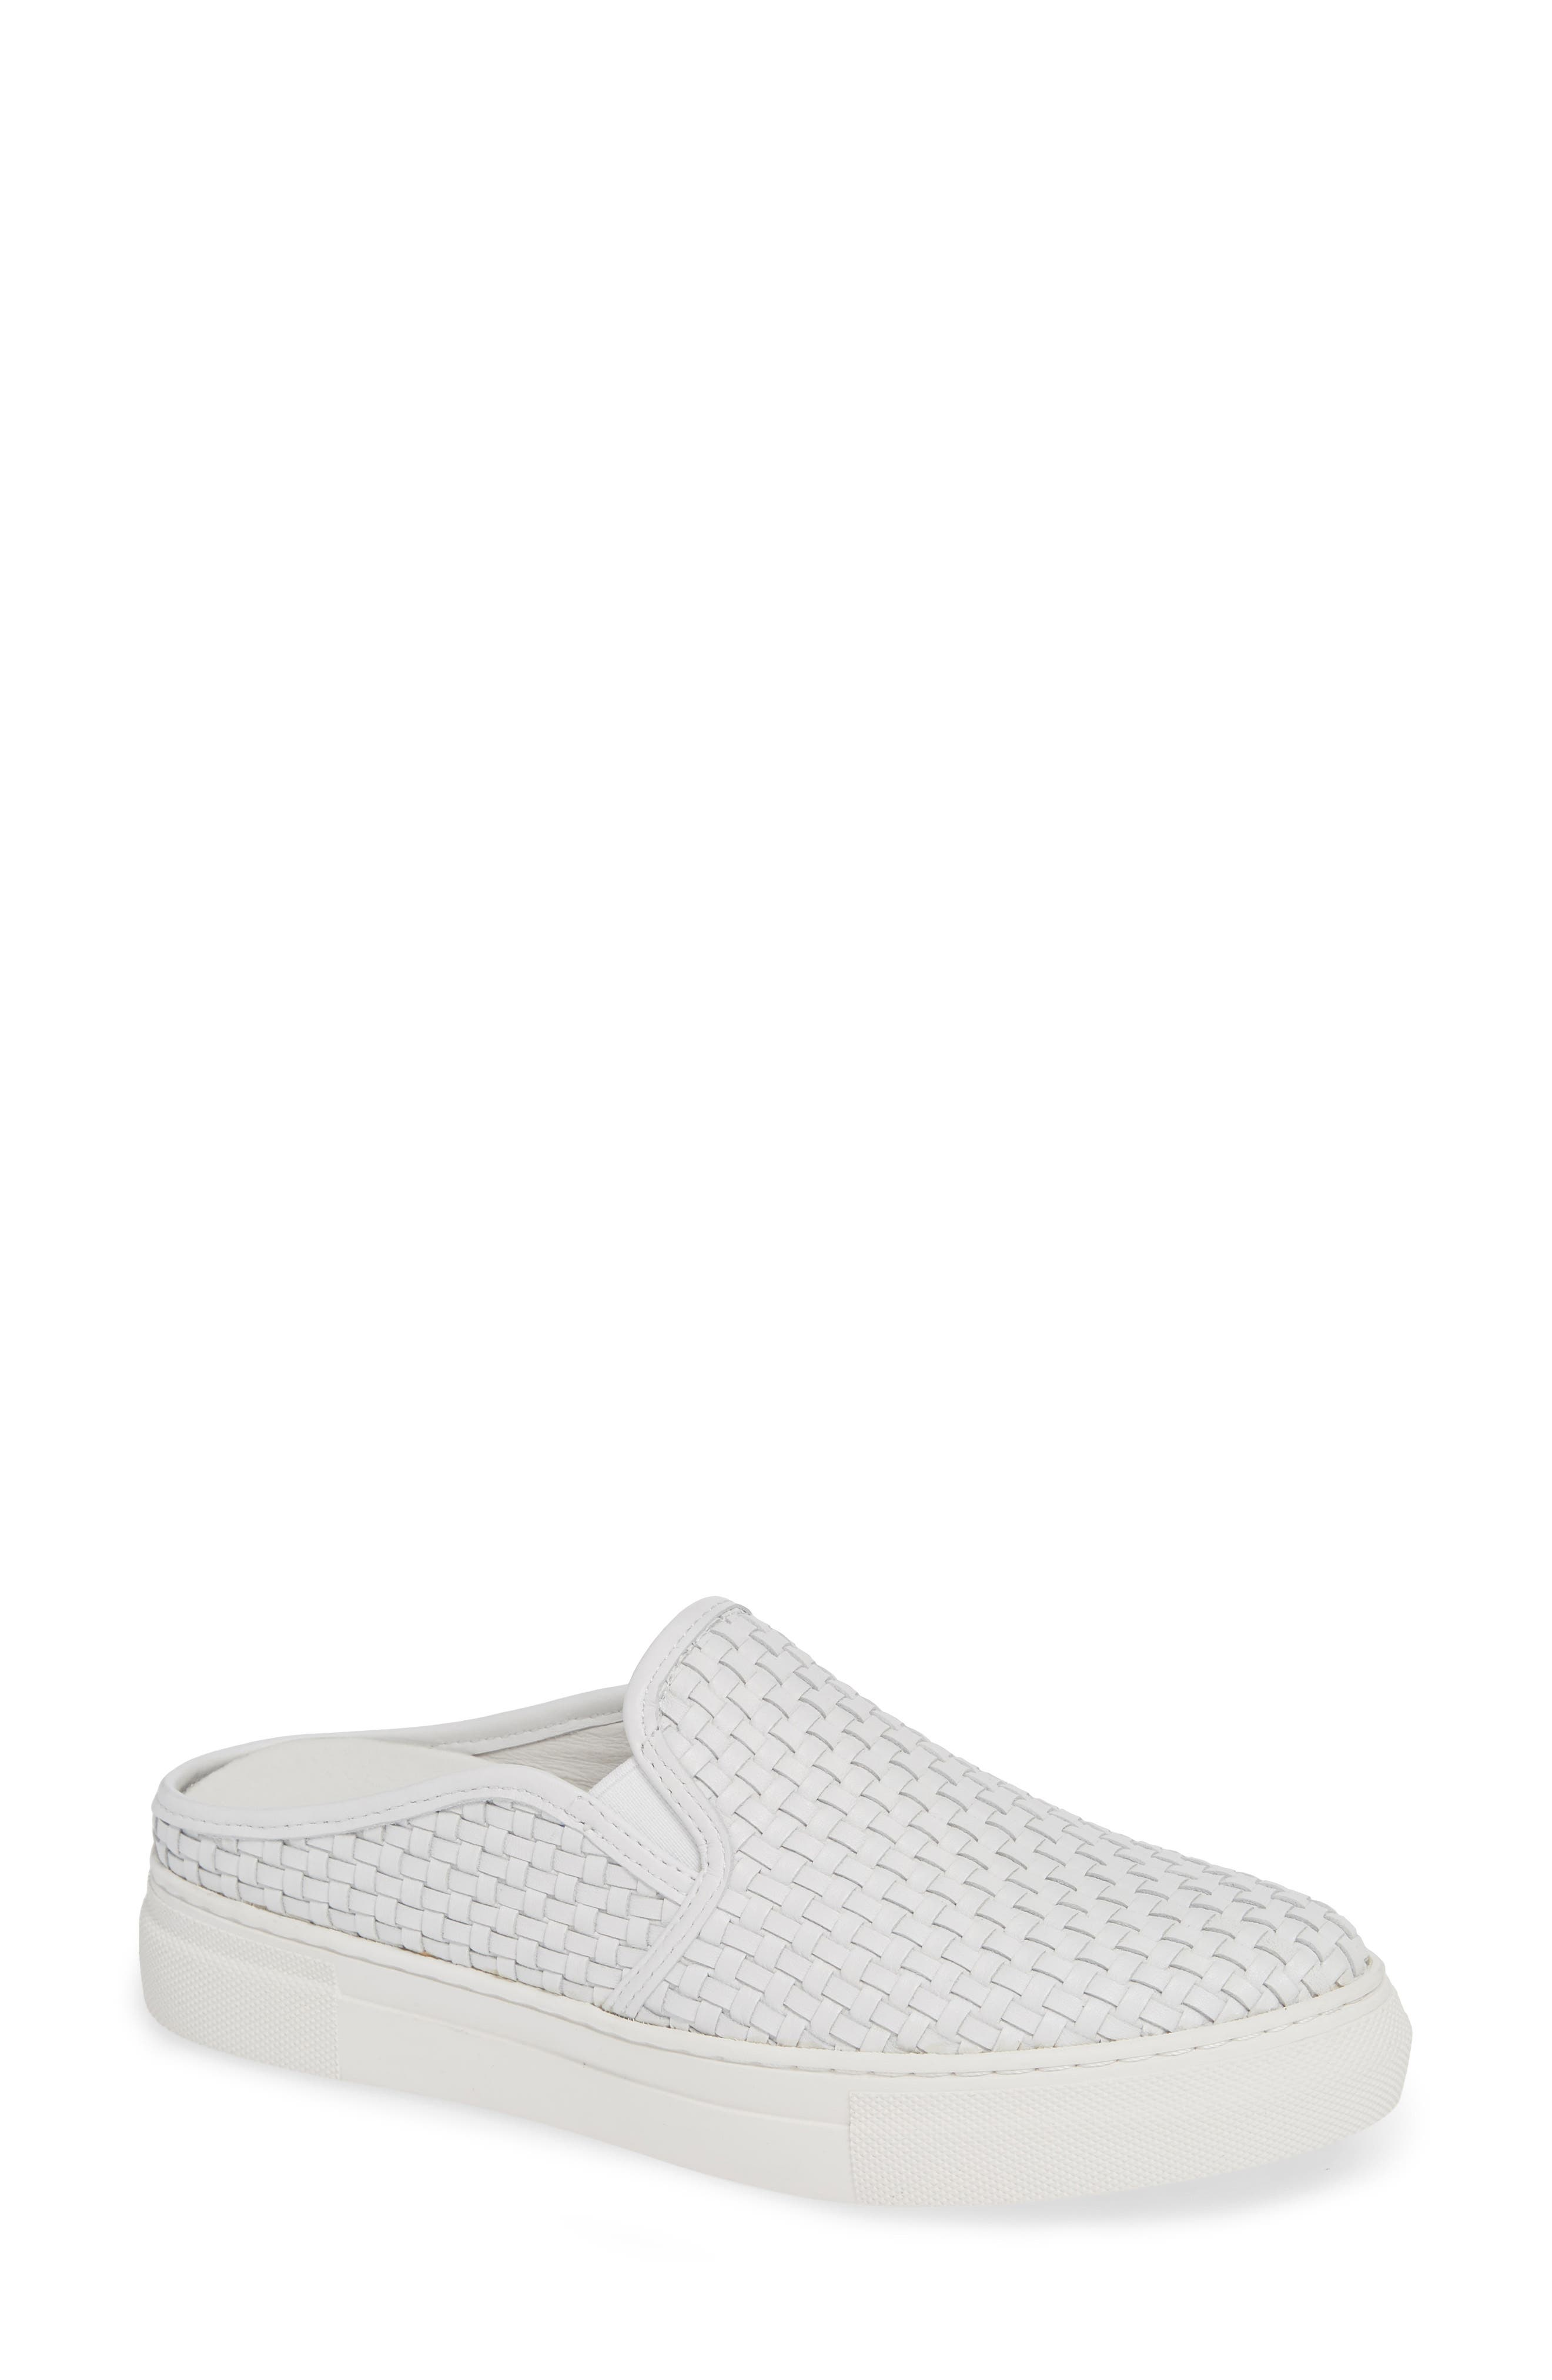 Fiona Woven Mule,                         Main,                         color, WHITE LEATHER